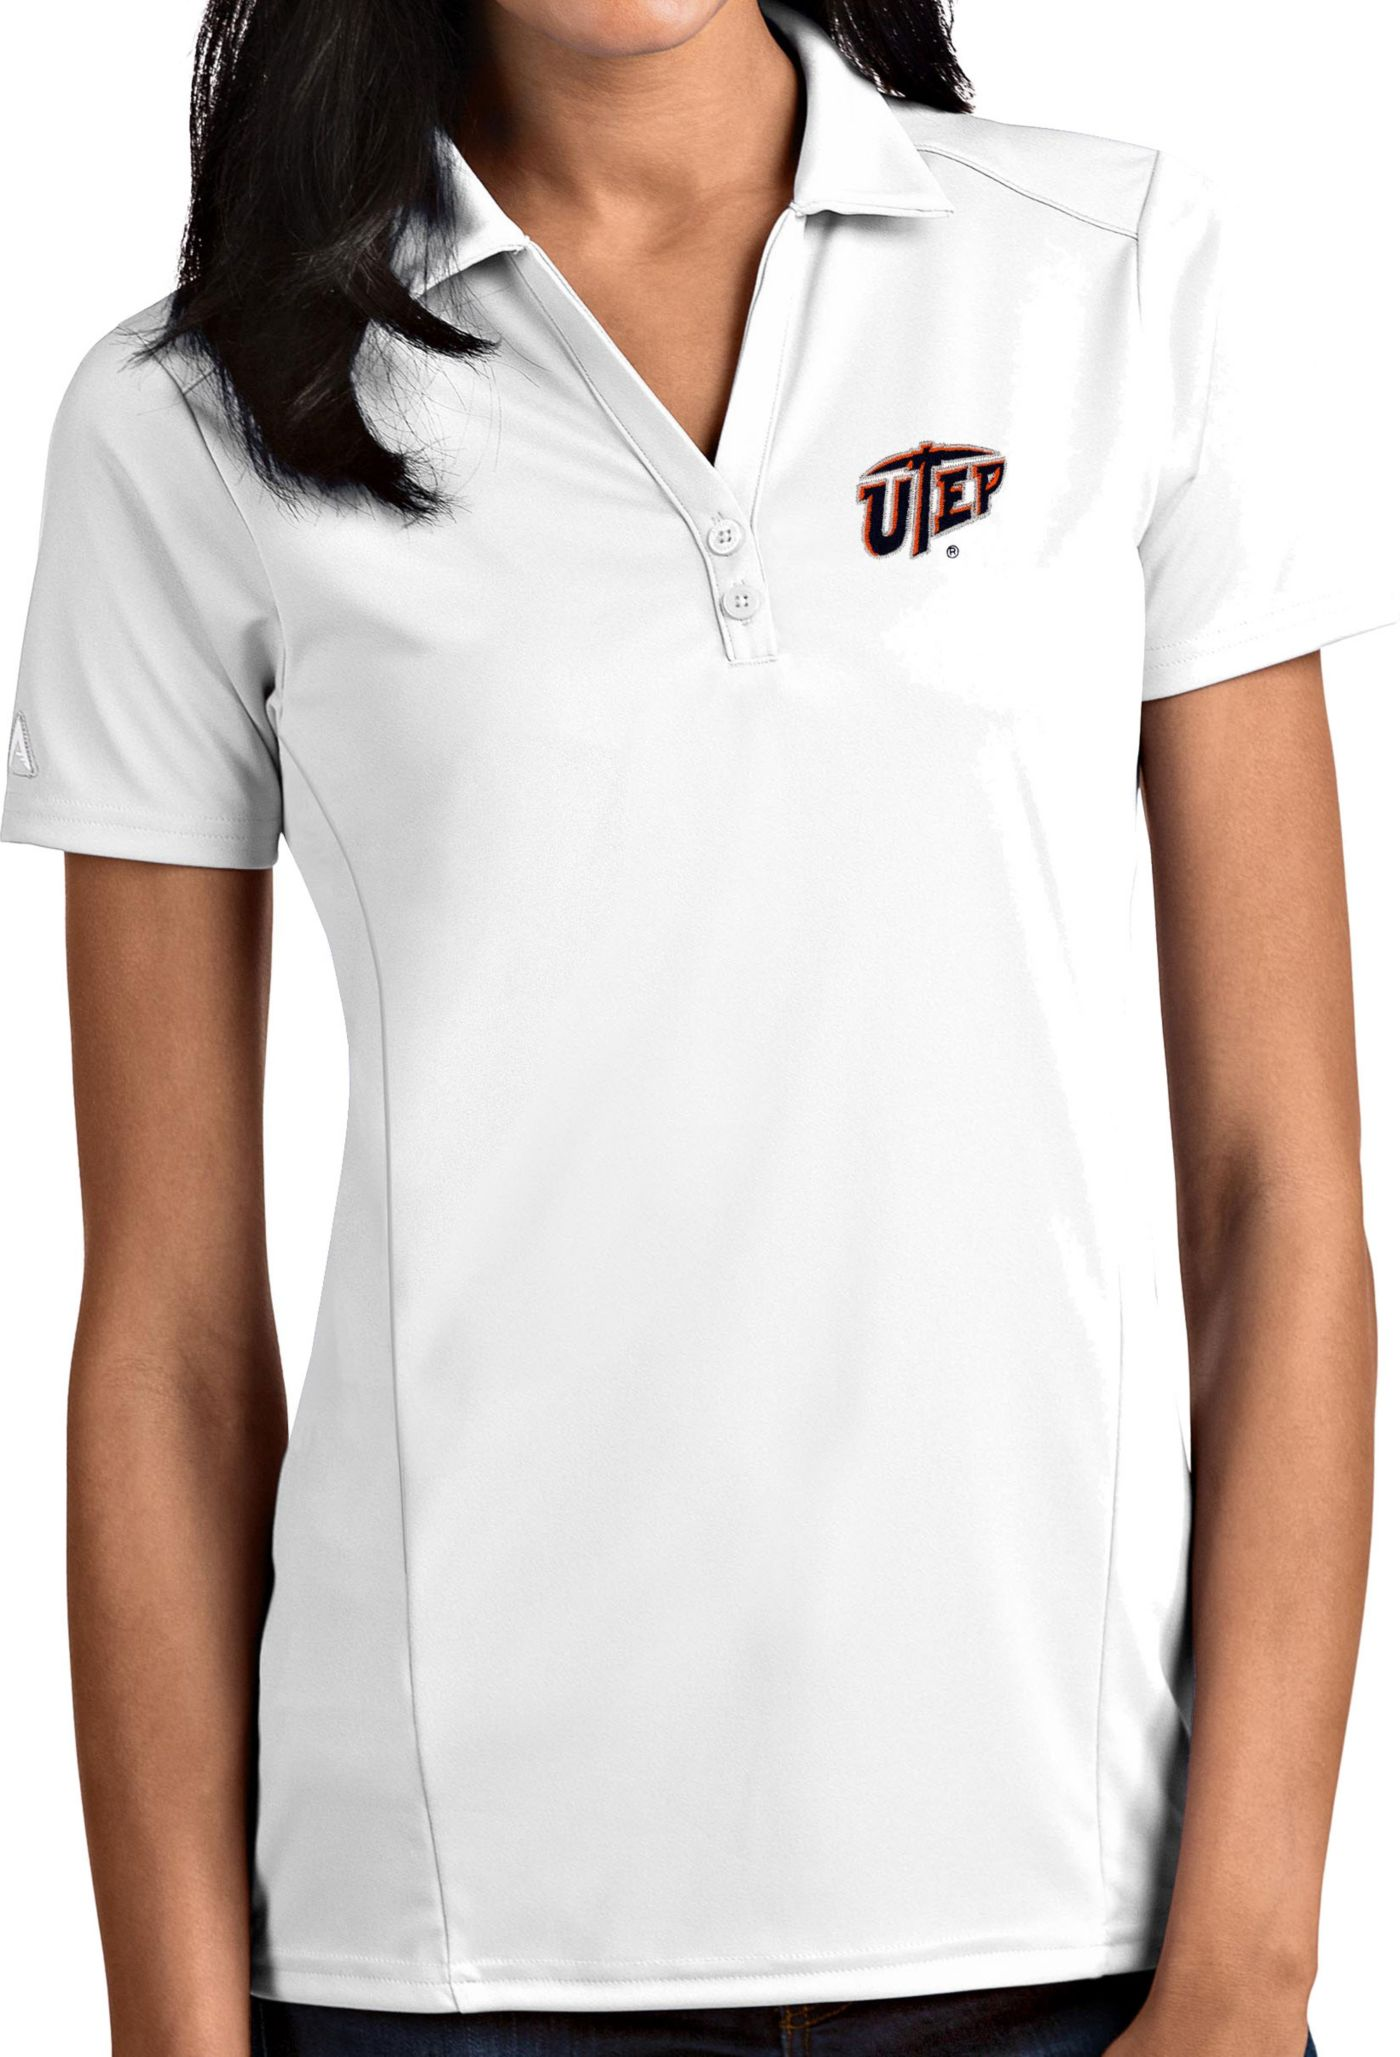 Antigua Women's UTEP Miners White Tribute Performance Polo